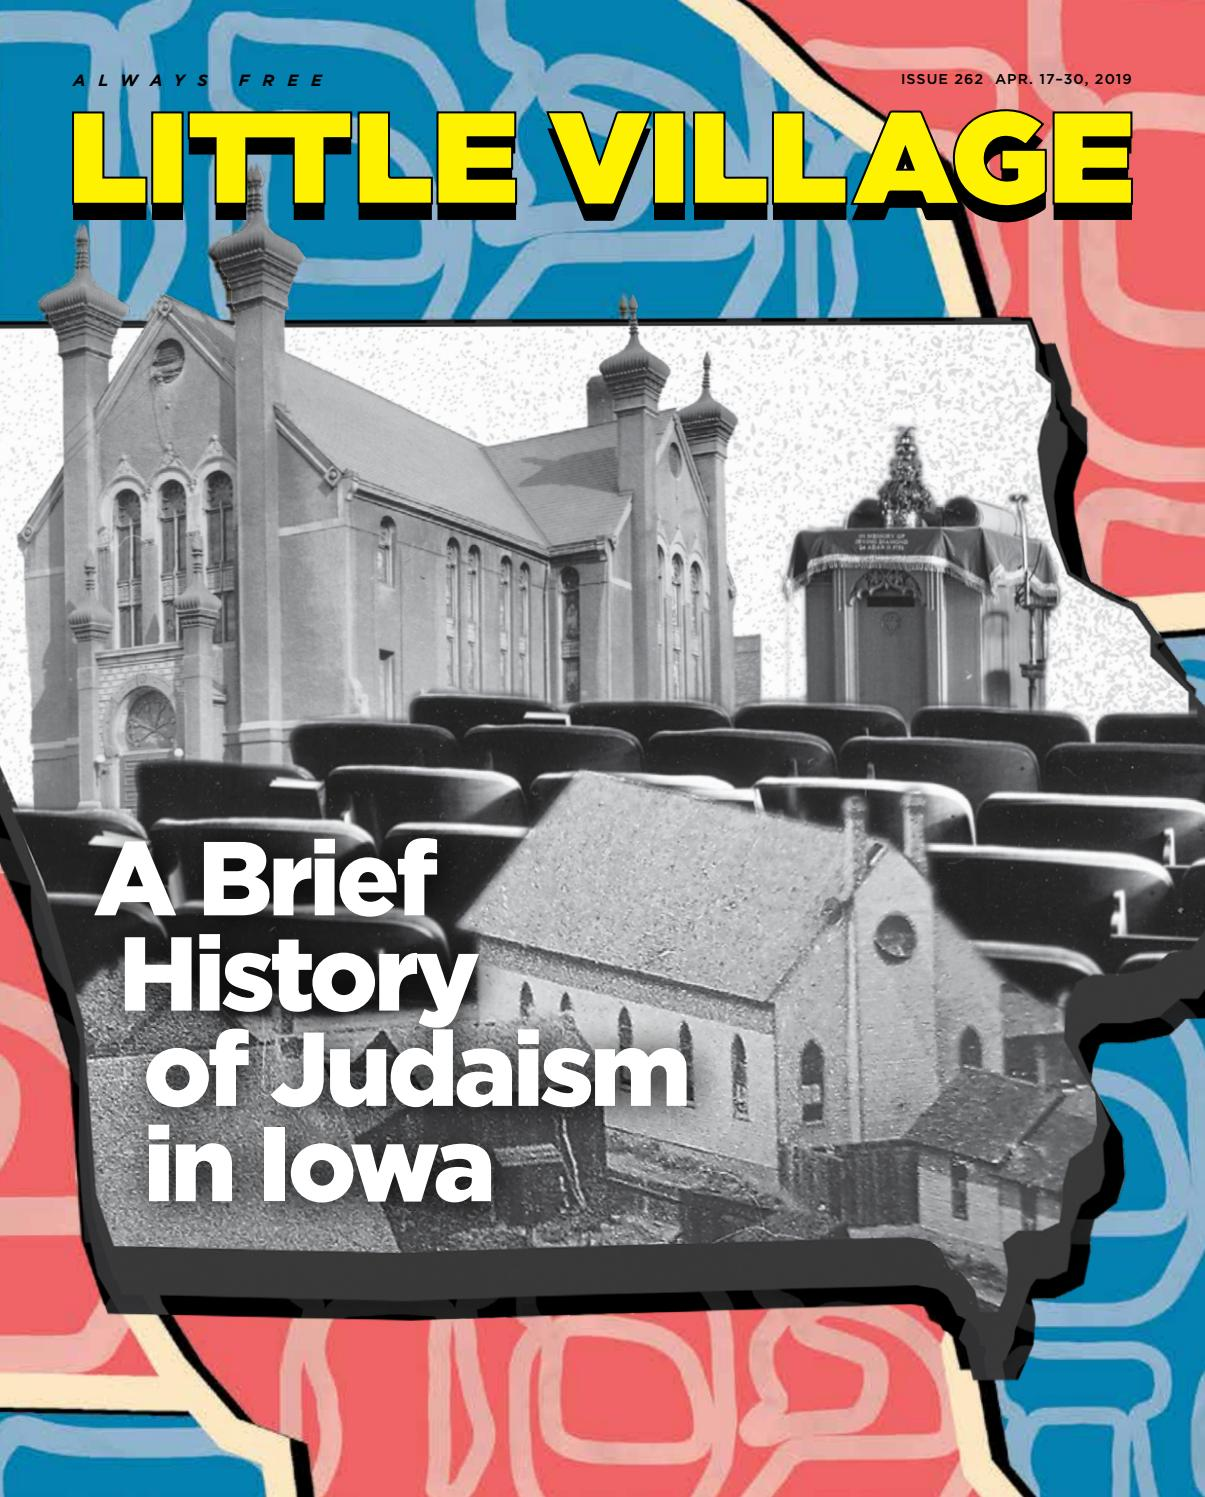 Little Village issue 262 - Apr  17-30, 2019 by Little